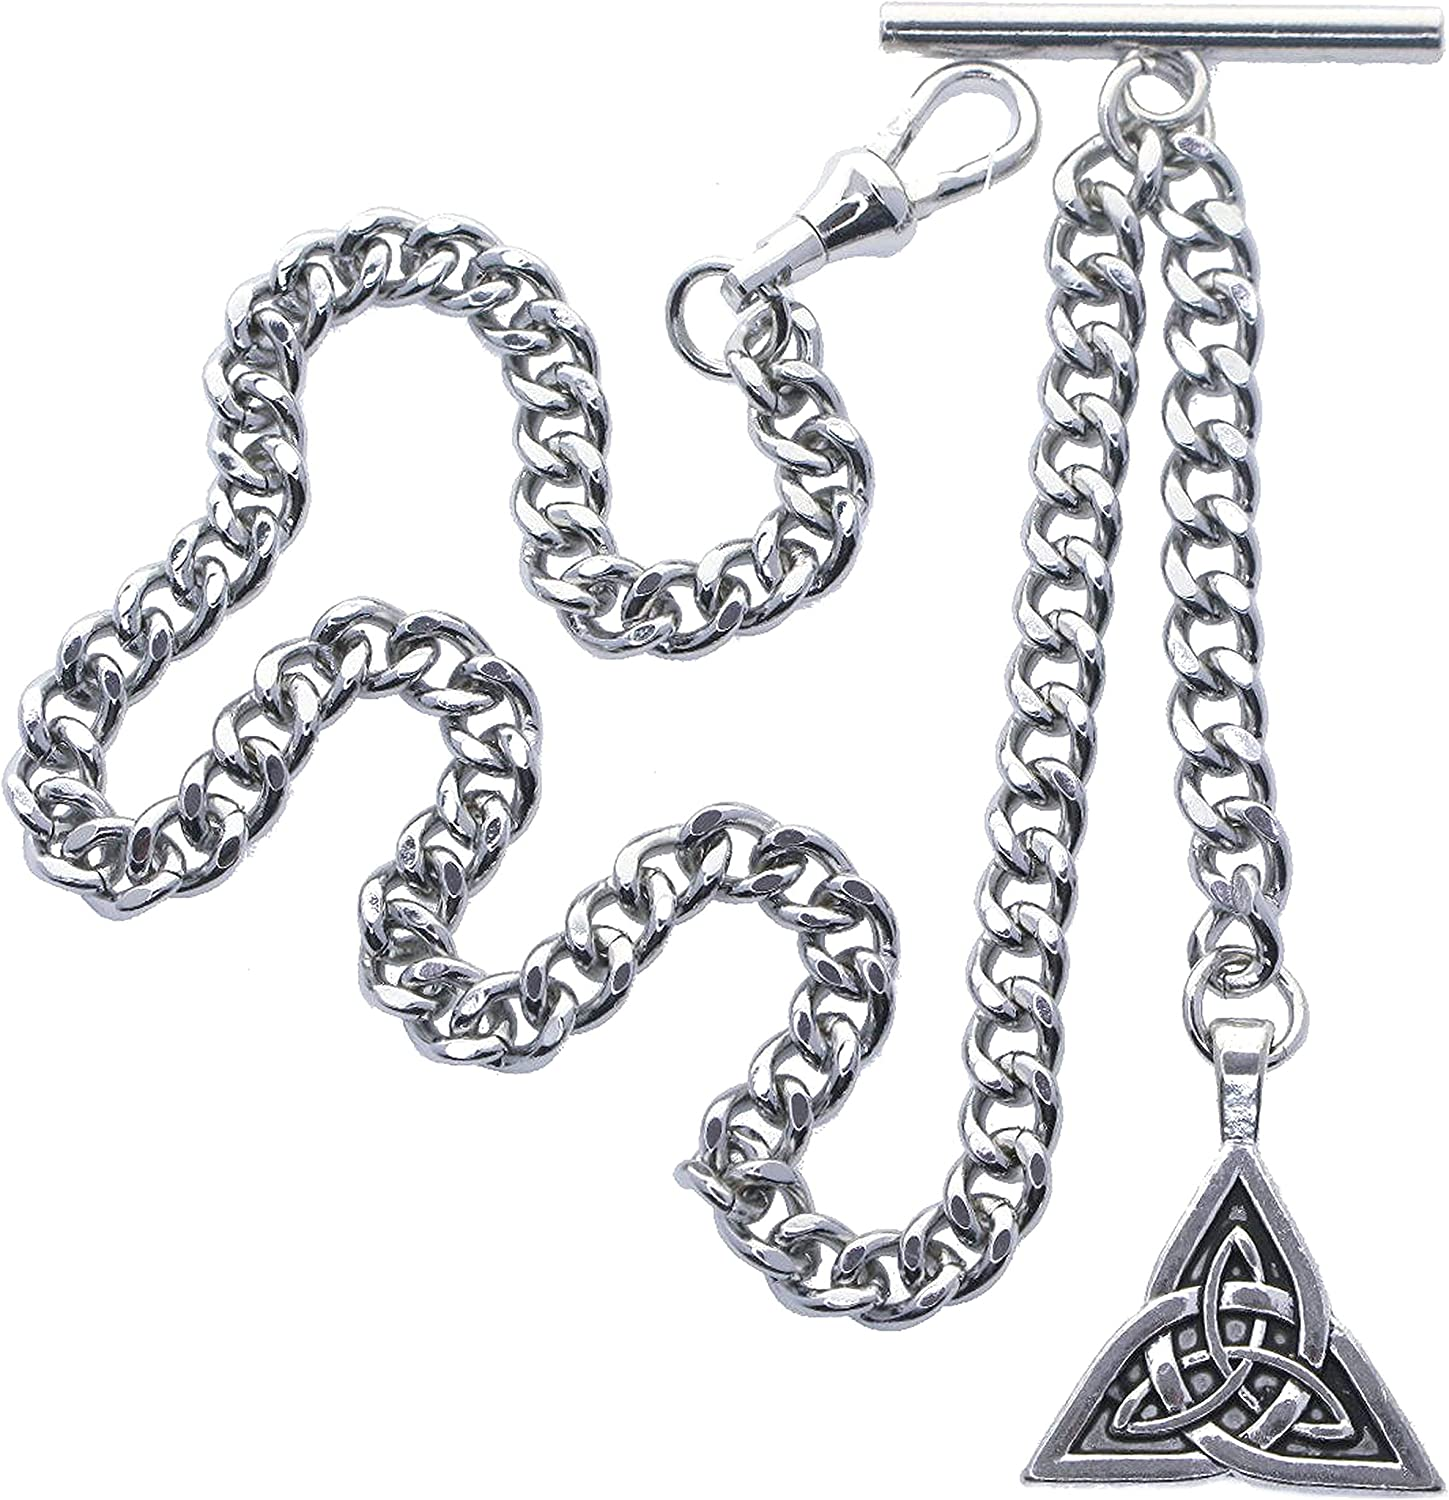 watchvshop Albert Chain Silver Color Pocket Watch Chain Fob Chain for Men Trinity Celtic Knot Design Medal Fob with T Bar Swivel Clasp AC191A : na: Clothing, Shoes & Jewelry